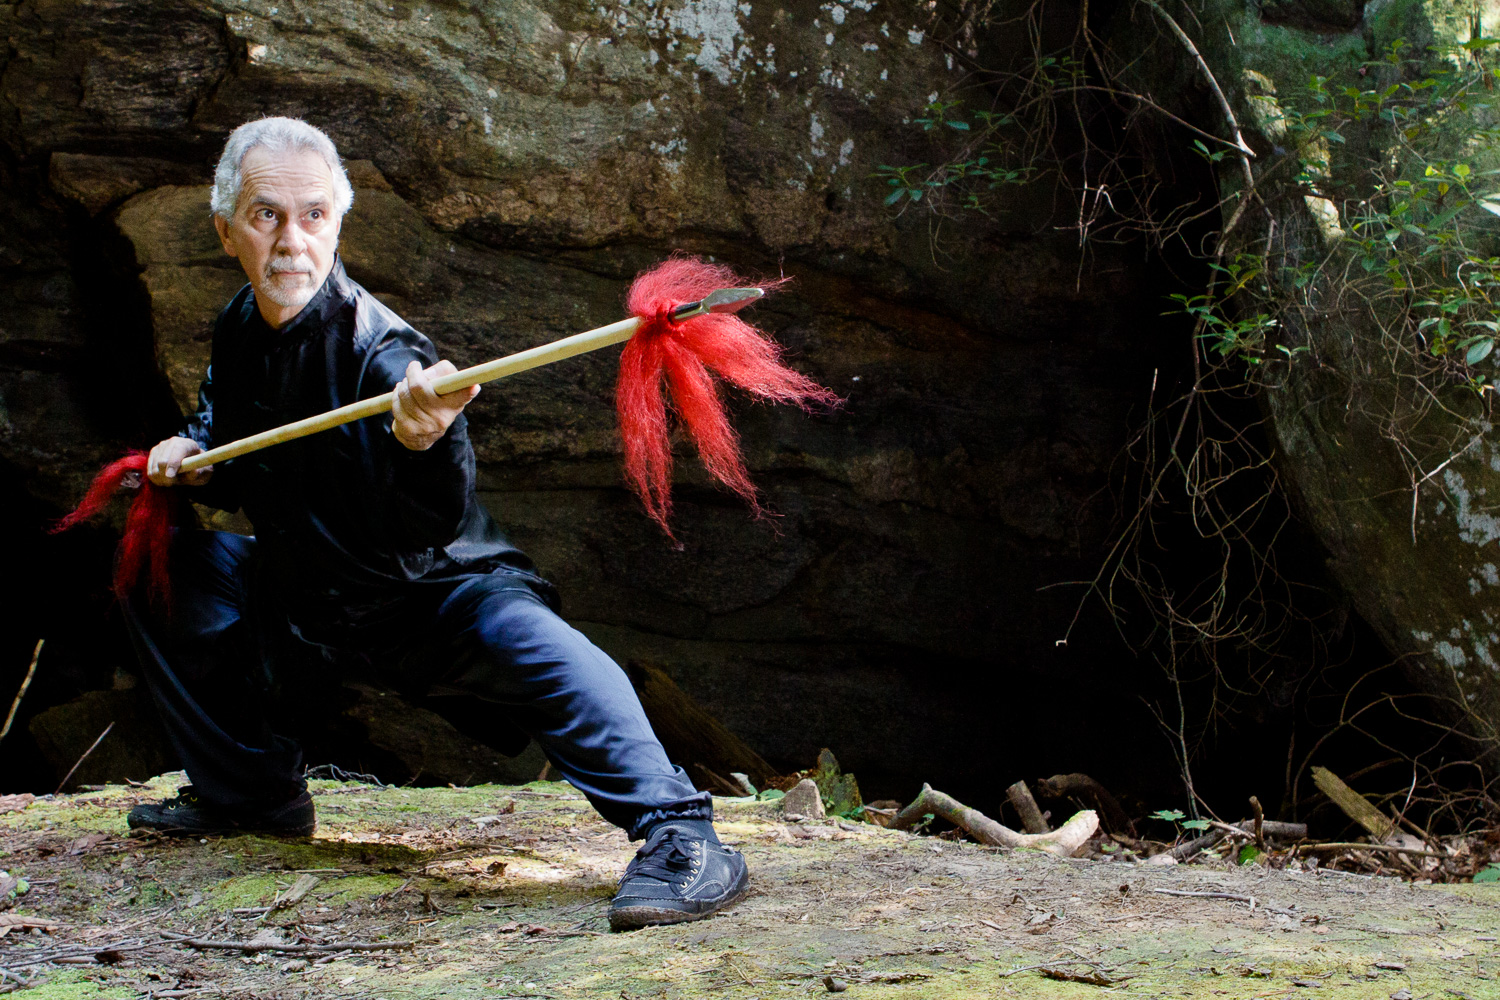 Sifu Paolillo with double-headed spear, 2012